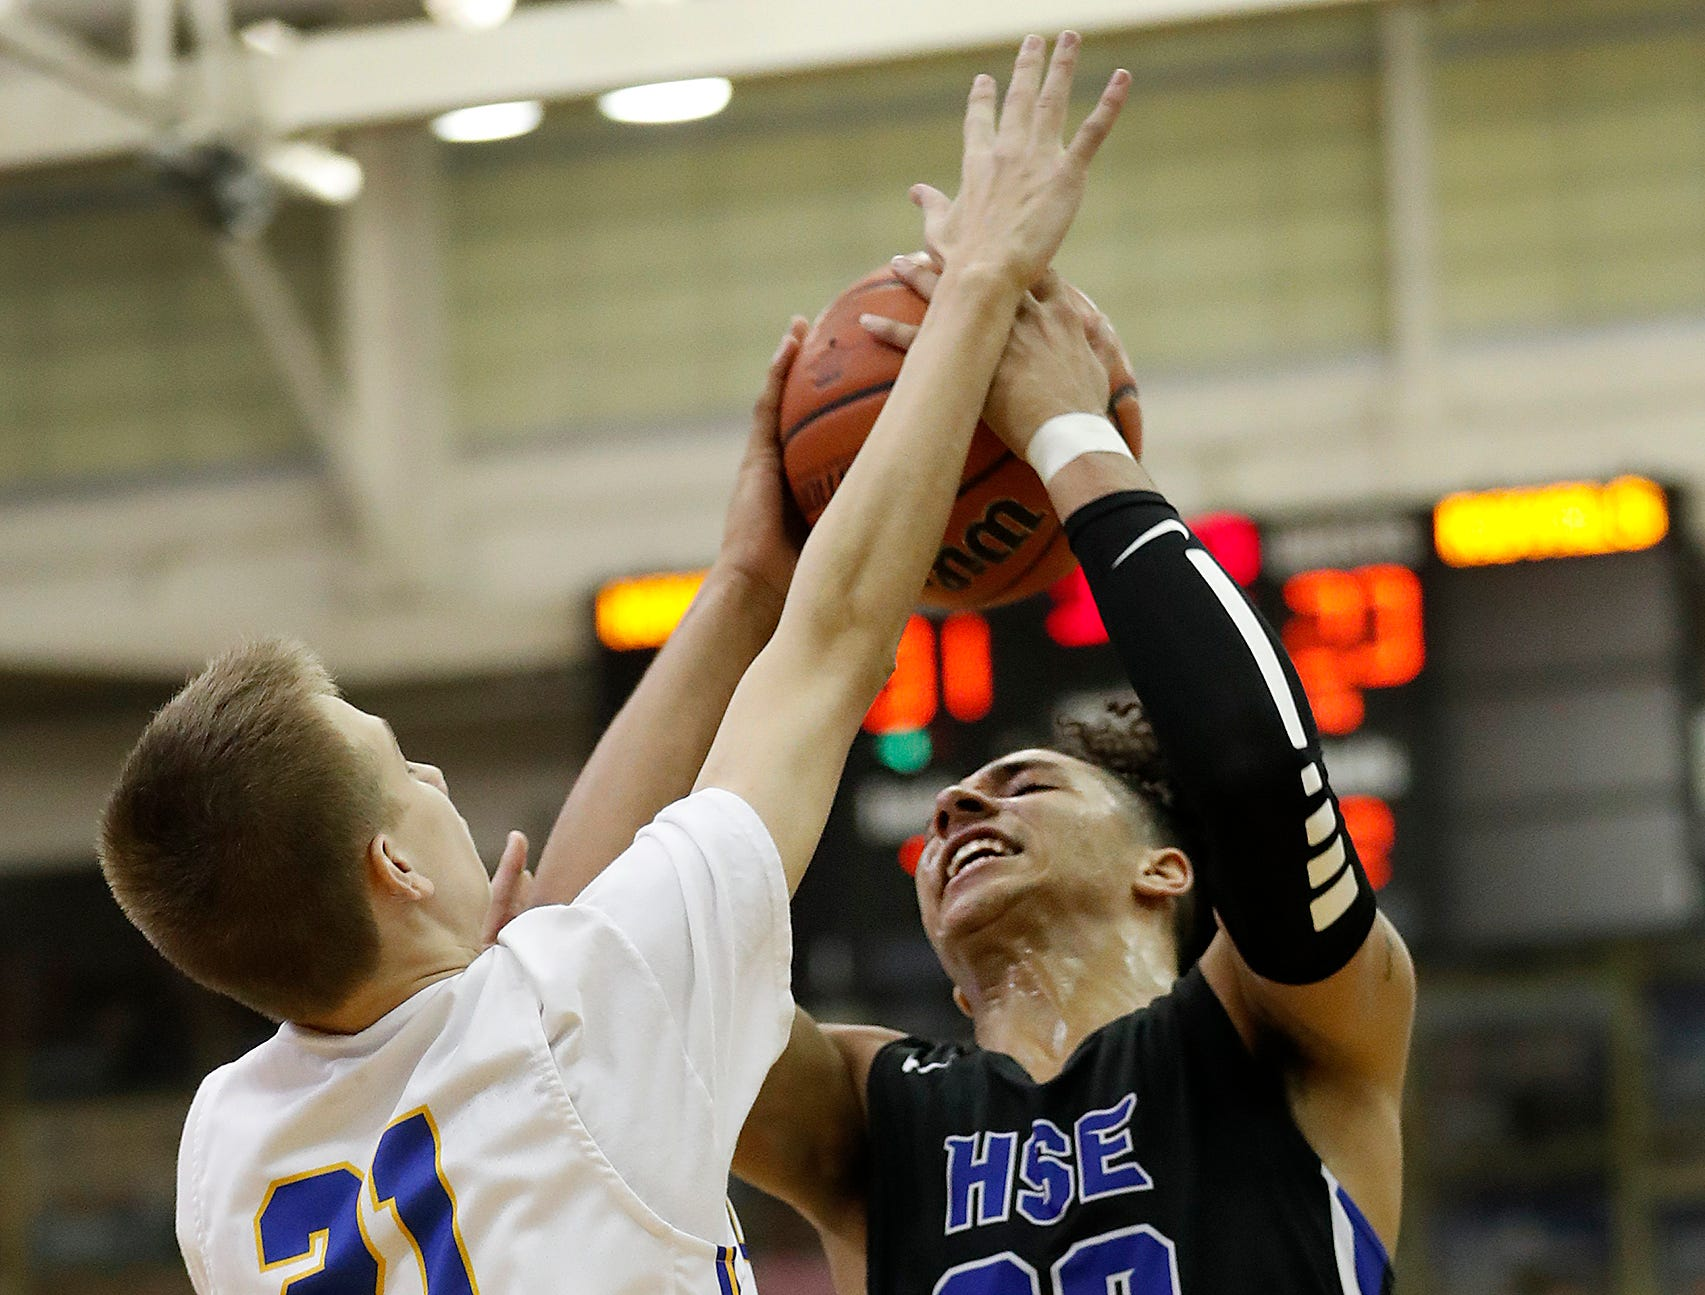 Hamilton Southeastern Royals Chris Grubbs (20) is fouled by Carmel Greyhounds Brian Waddell (21) in the second half of their game at Carmel High School on Friday, Feb. 8, 2019.